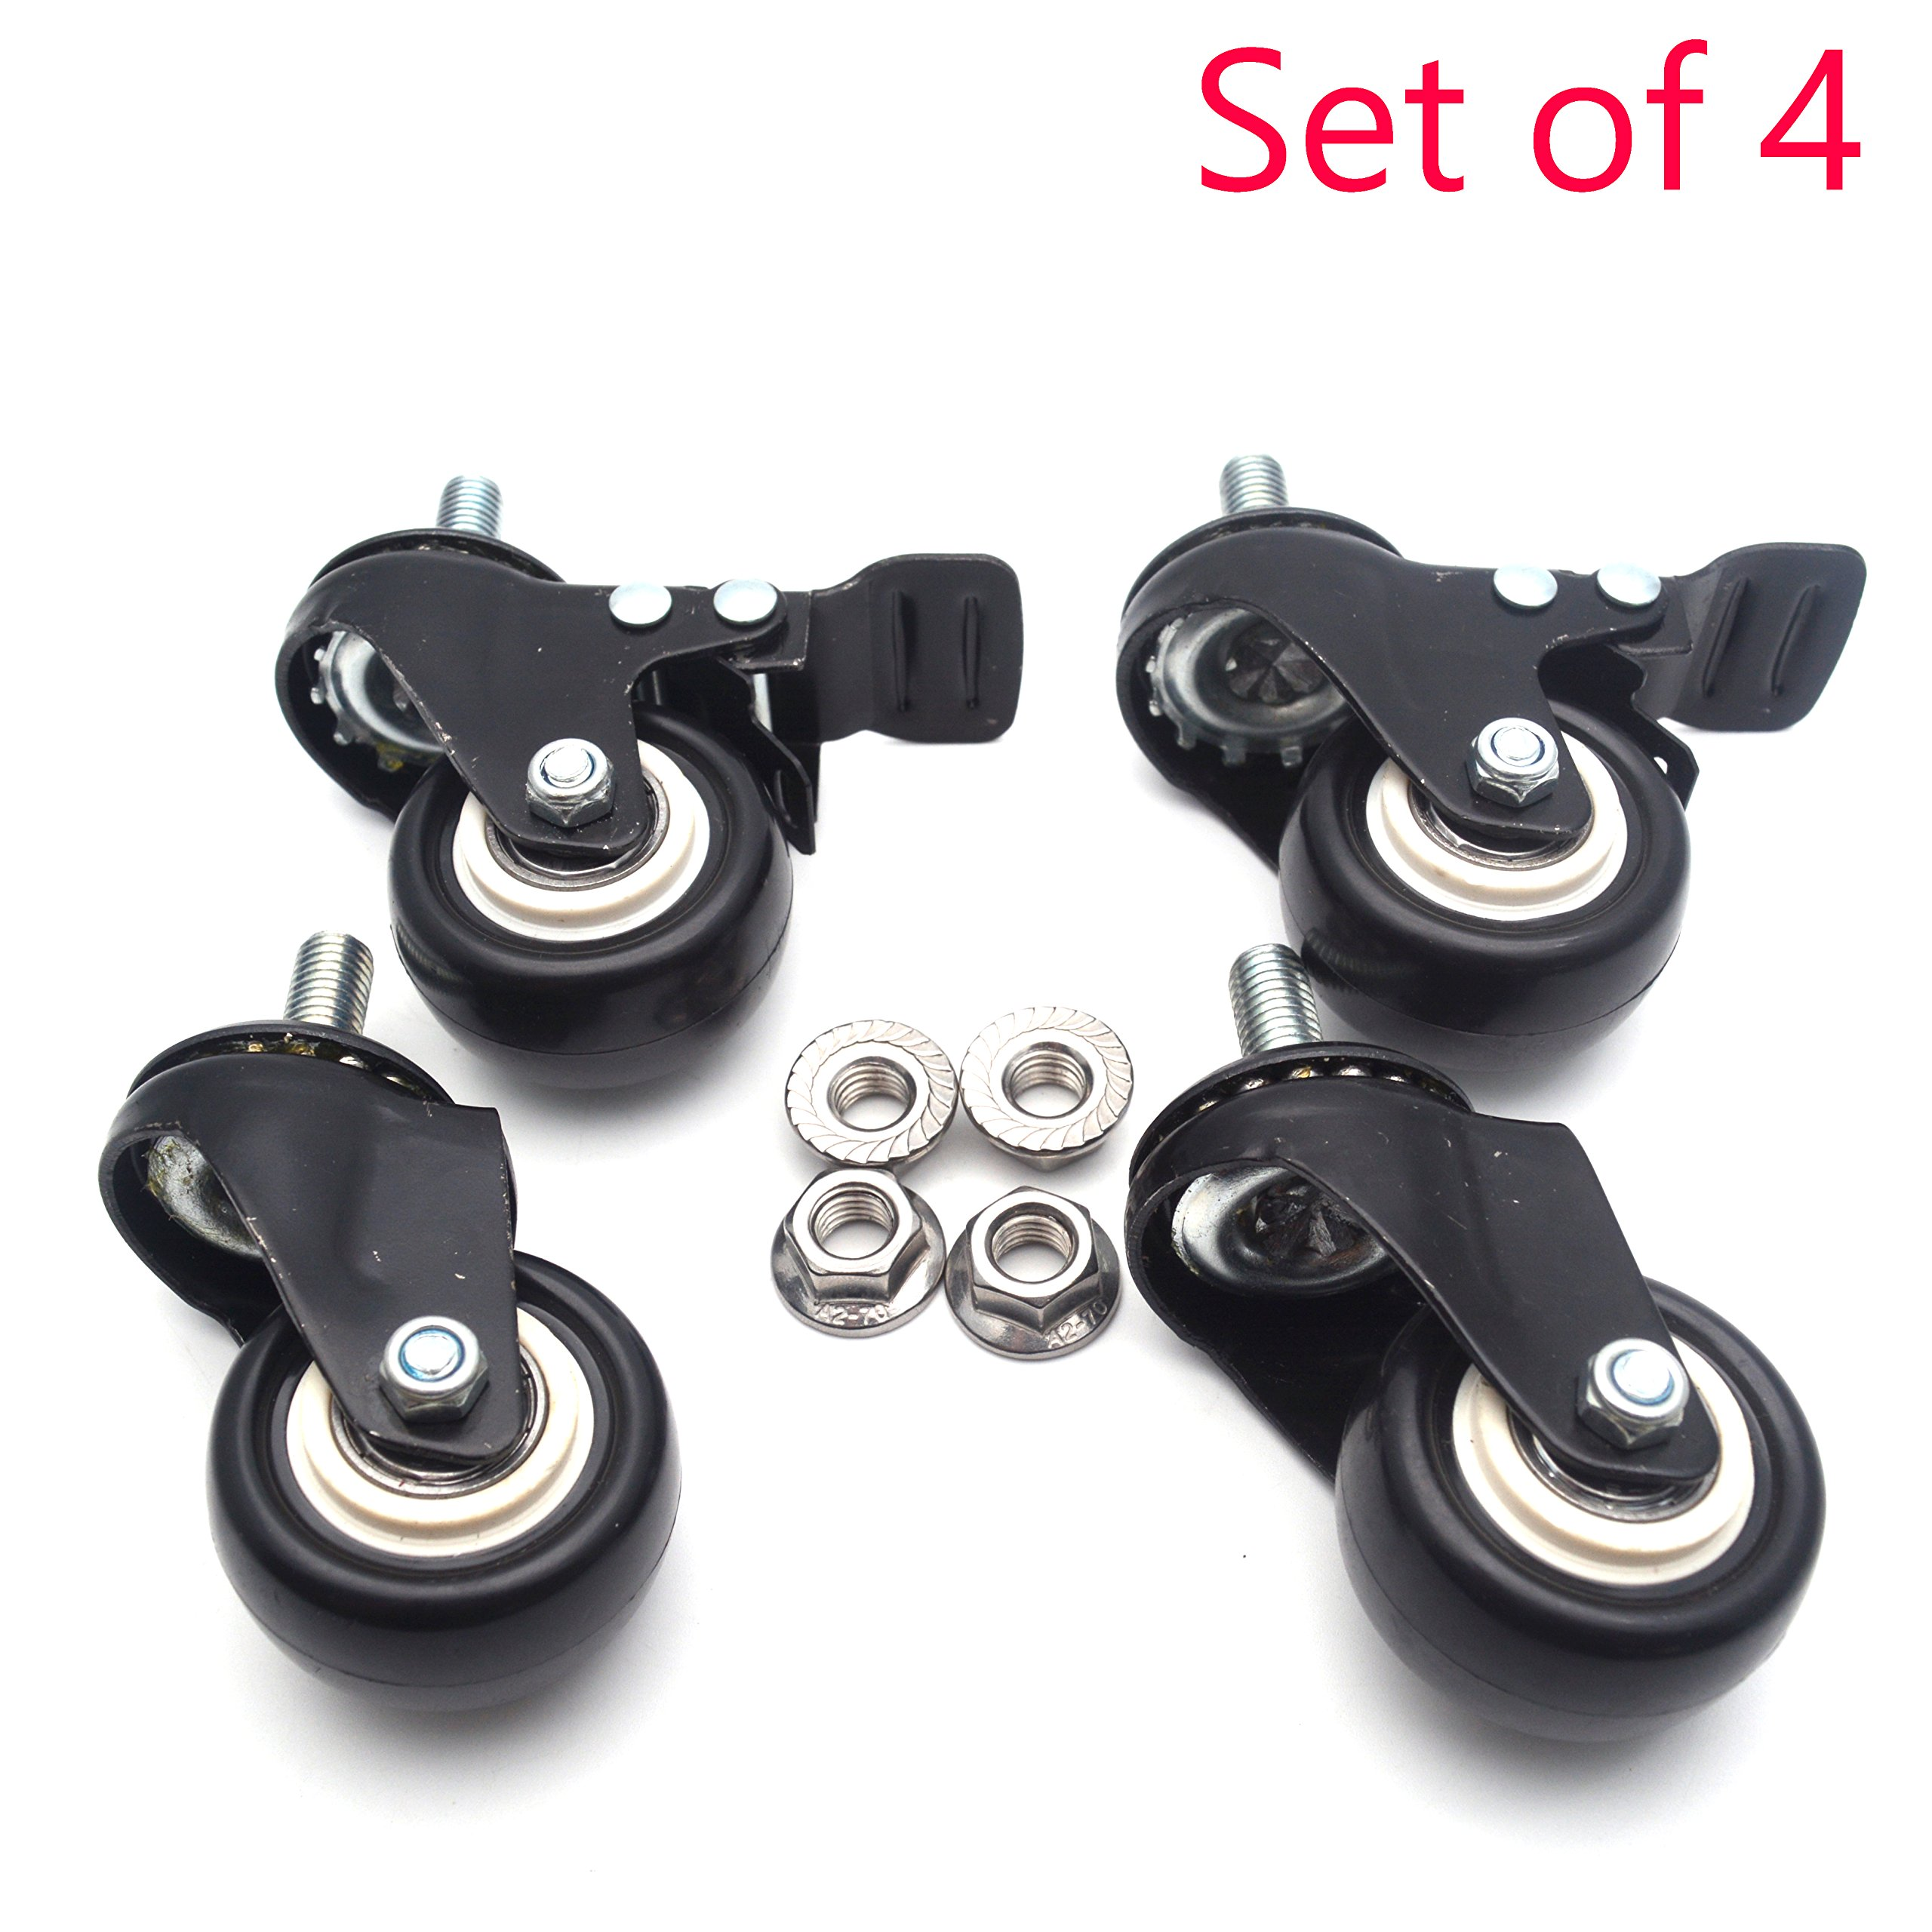 Sydien 2'' Dia. No Noise Stem Casters, 2 Brake Caster Wheels plus 2 Swivel Caster Wheels without Brake - with 25mm/1'' Threaded Stem and Nuts for Carts Trolley Furniture